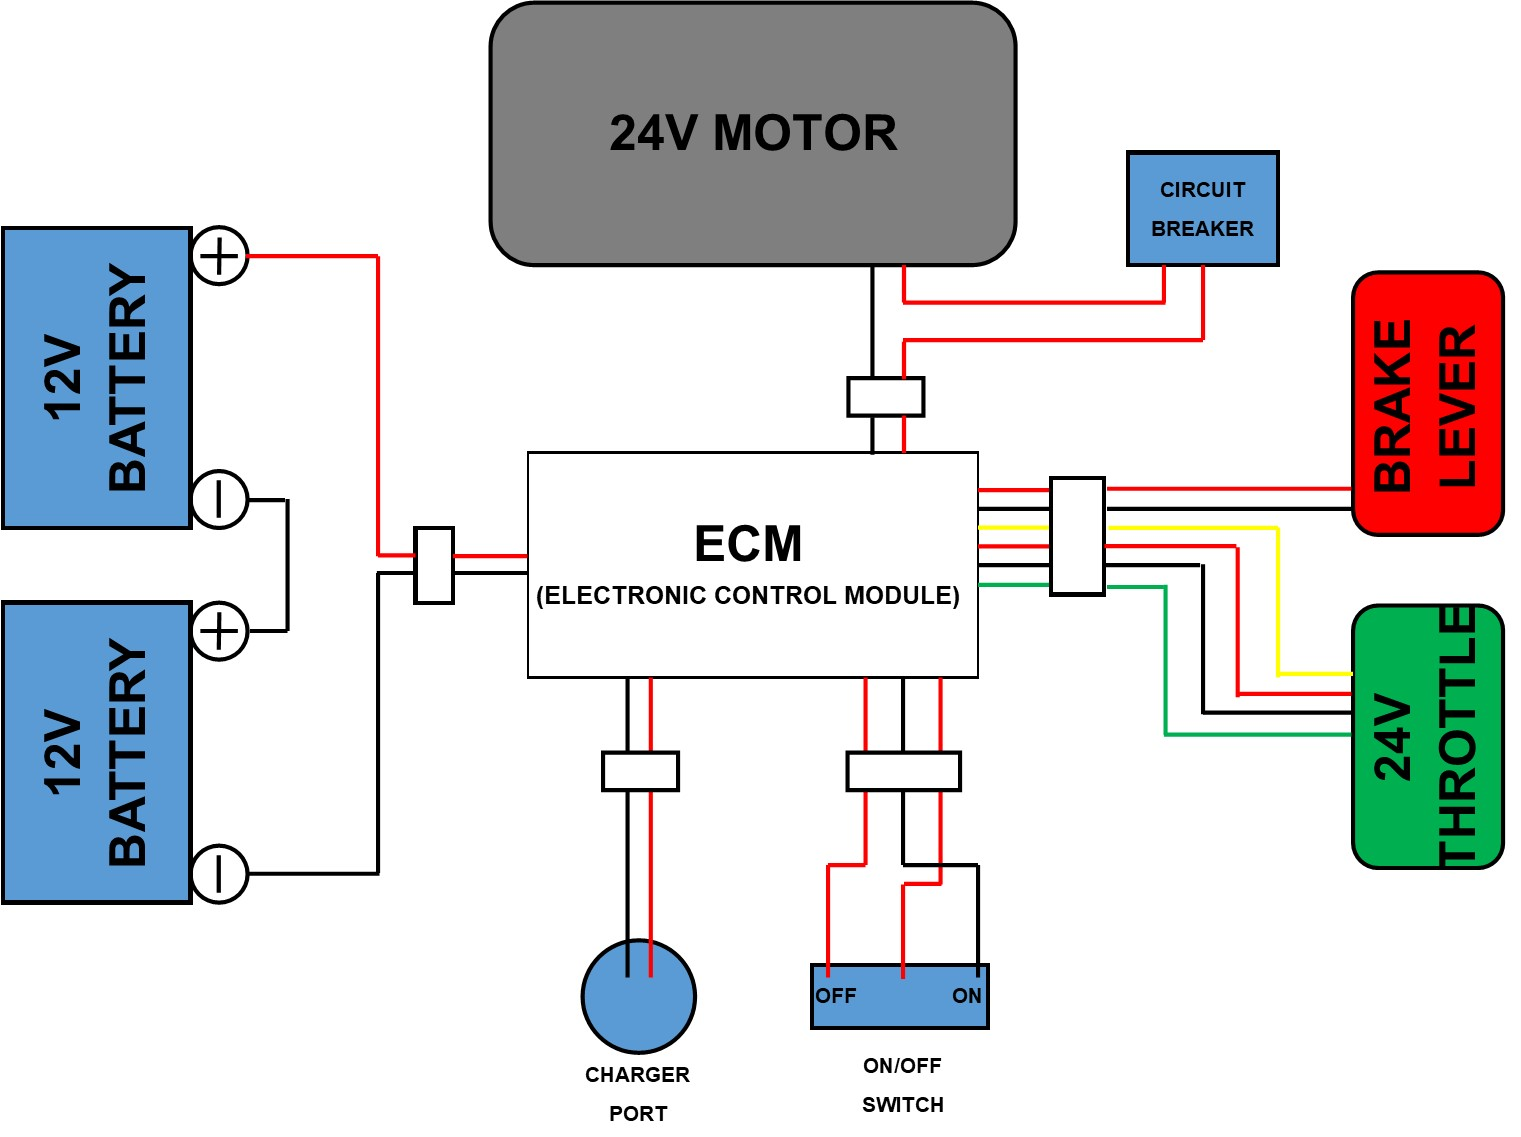 Cb500T Wiring Diagram from www.cruzincooler.com